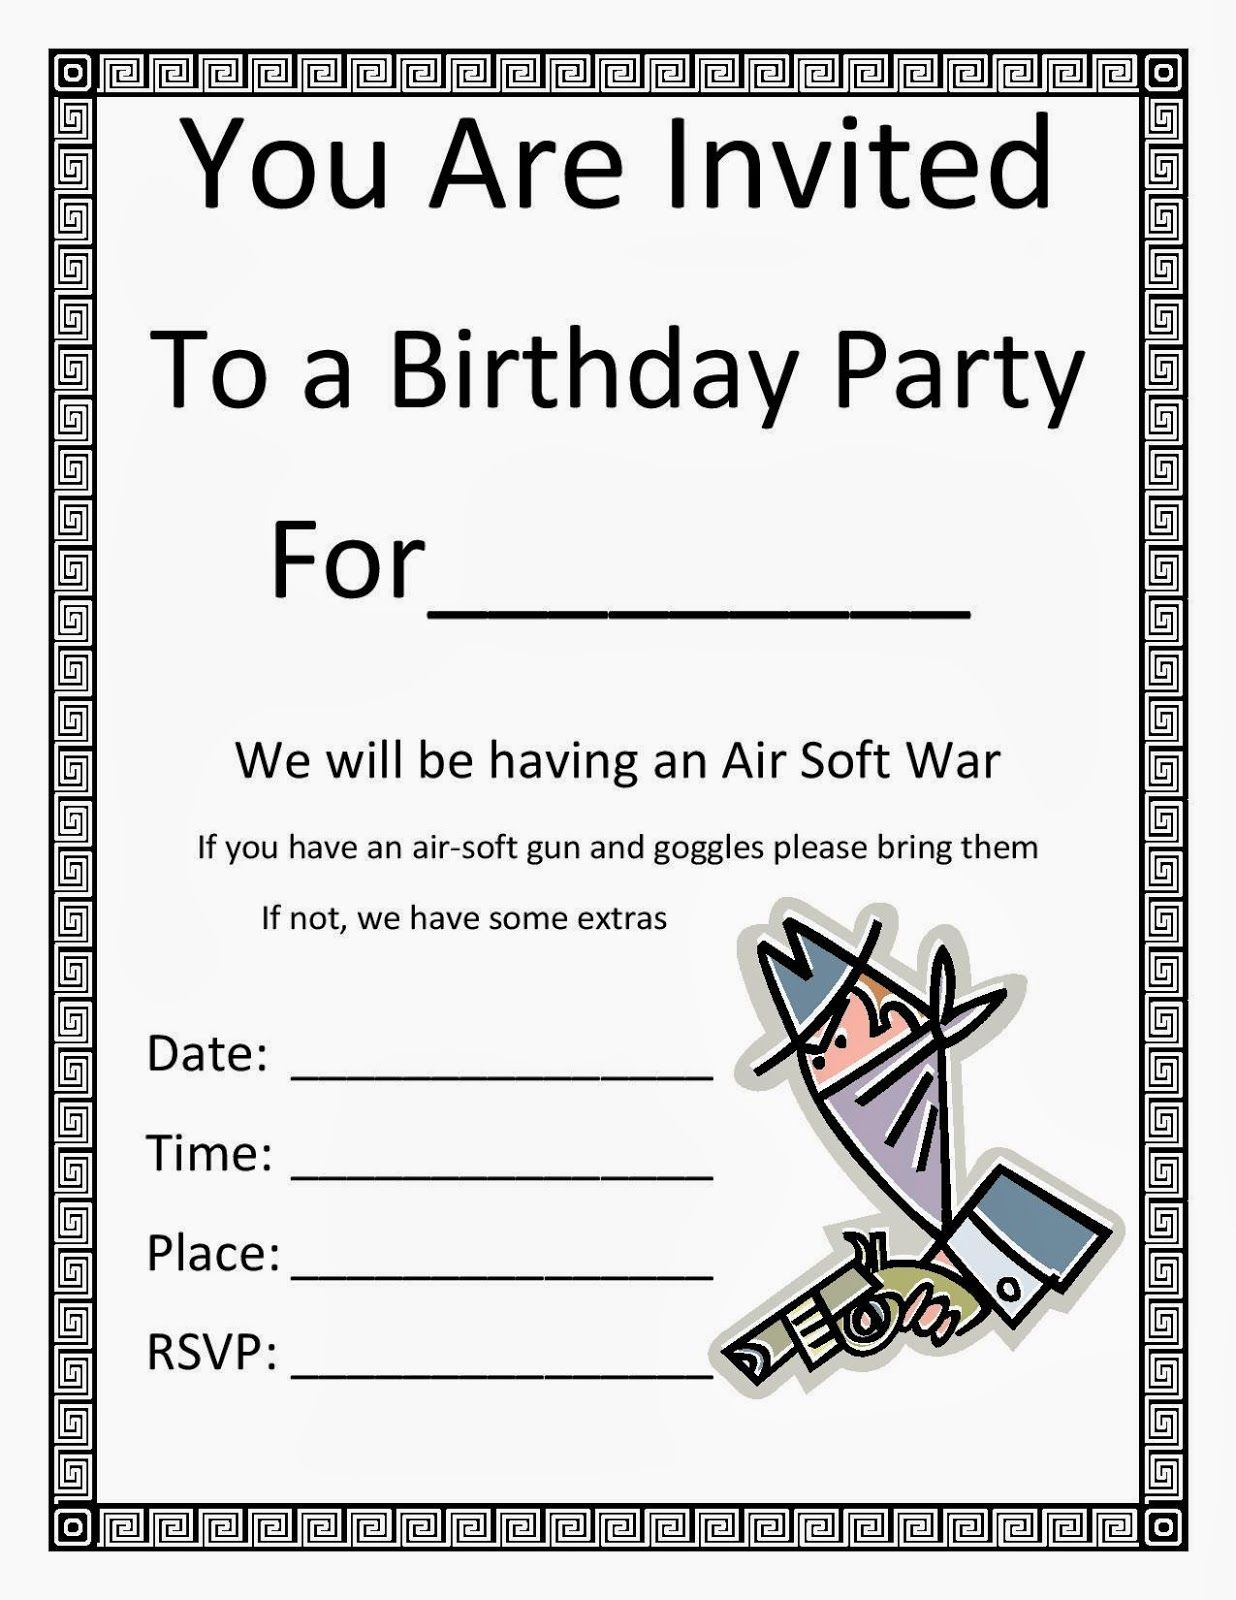 Free Birthday Party Invitation Template Along With All The Instructions Of How To Host Perfect For 13 Year Old Boys